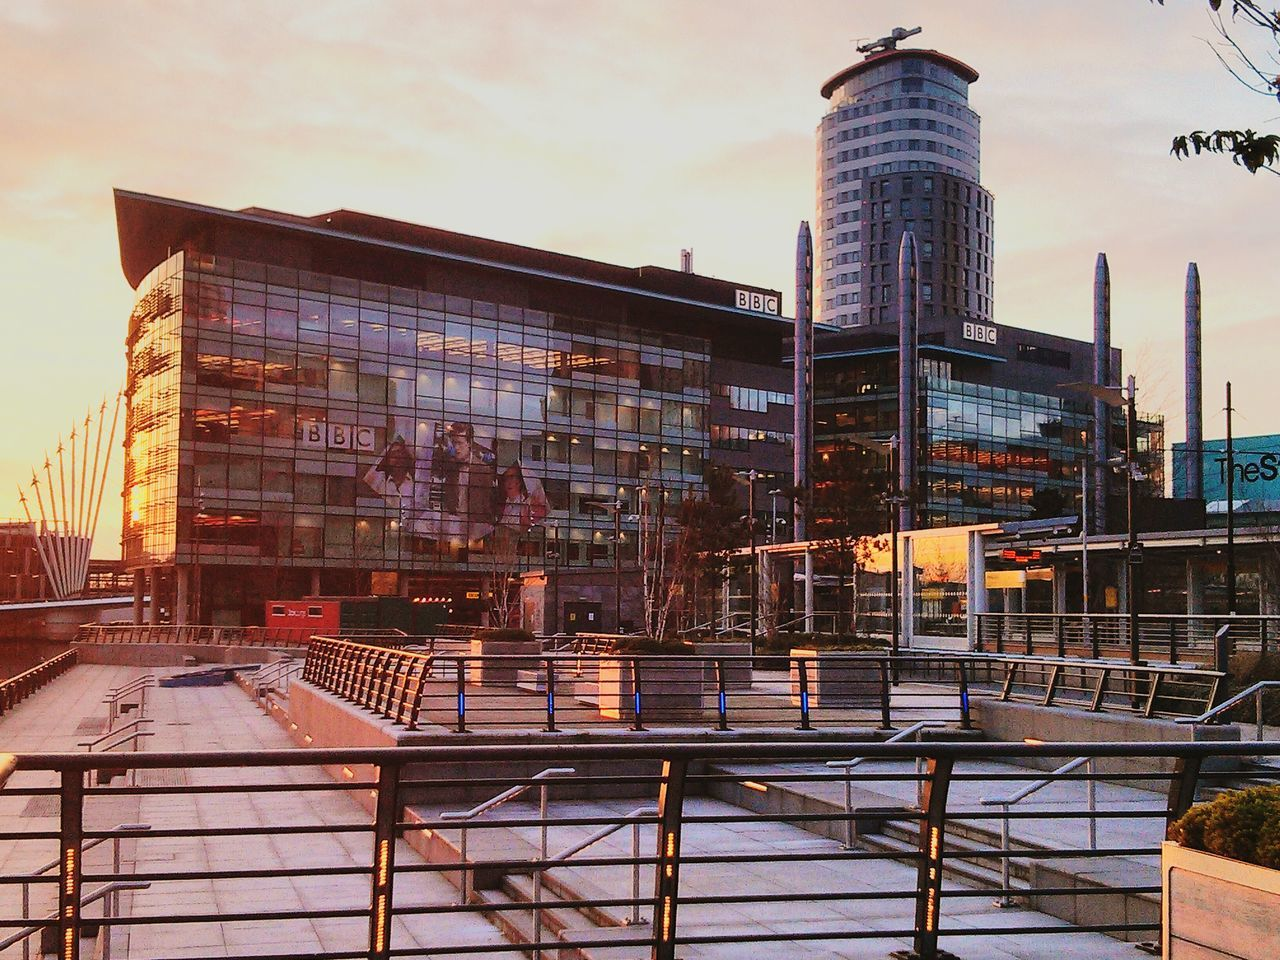 Salford Quays BBC England Uk Salford Architecture Outdoors Urban Skyline Day Sky Sunset EyeEmNewHere